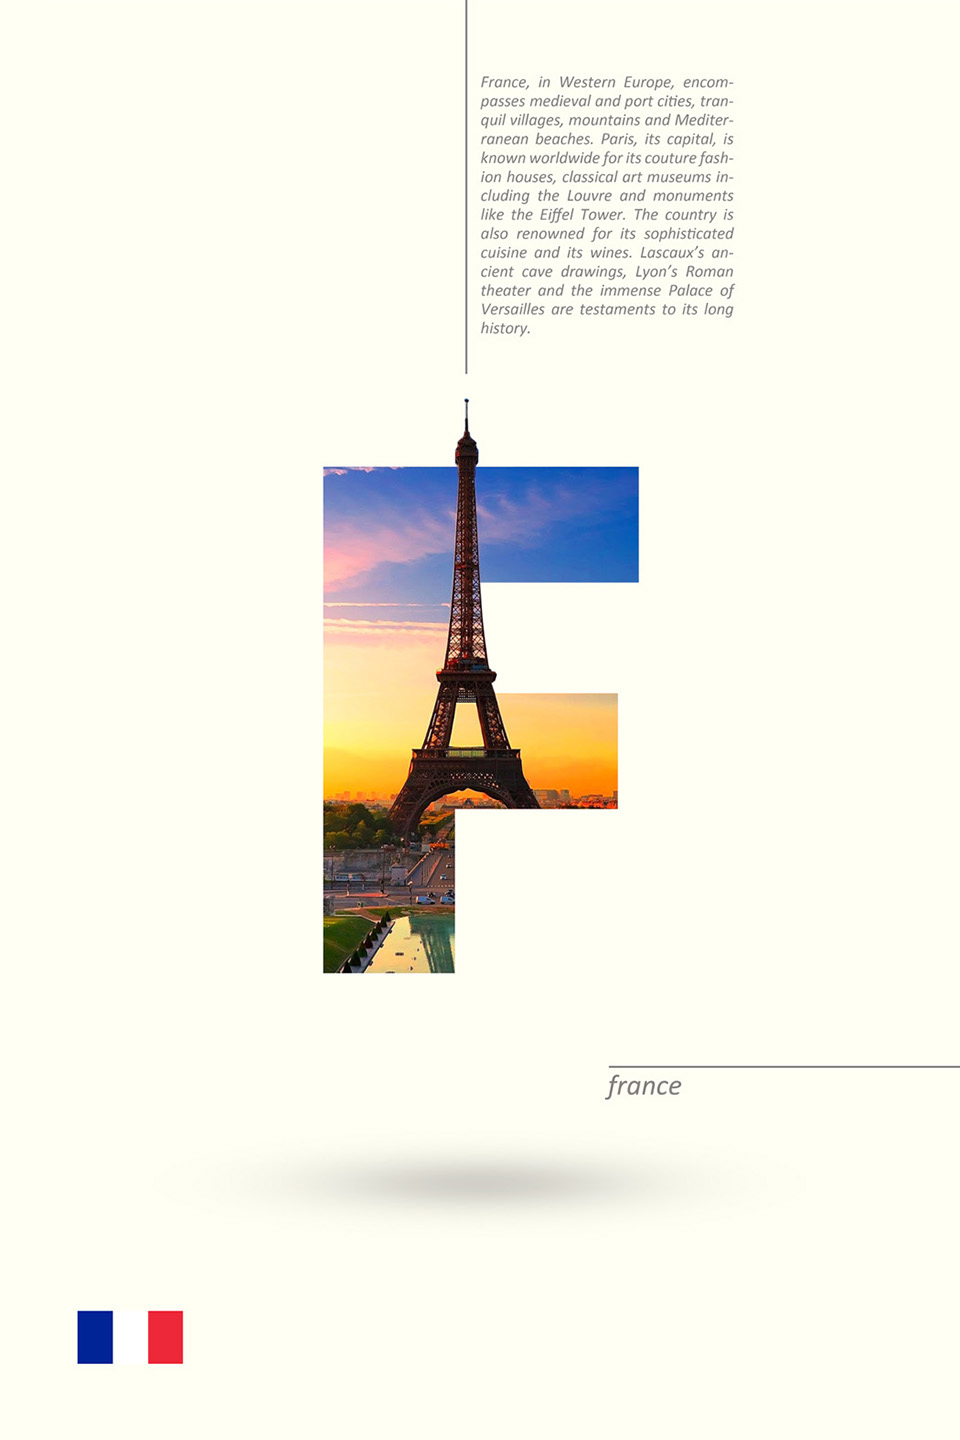 Beautiful Alphabet Series Of Countries And Their Iconic Landmarks - France